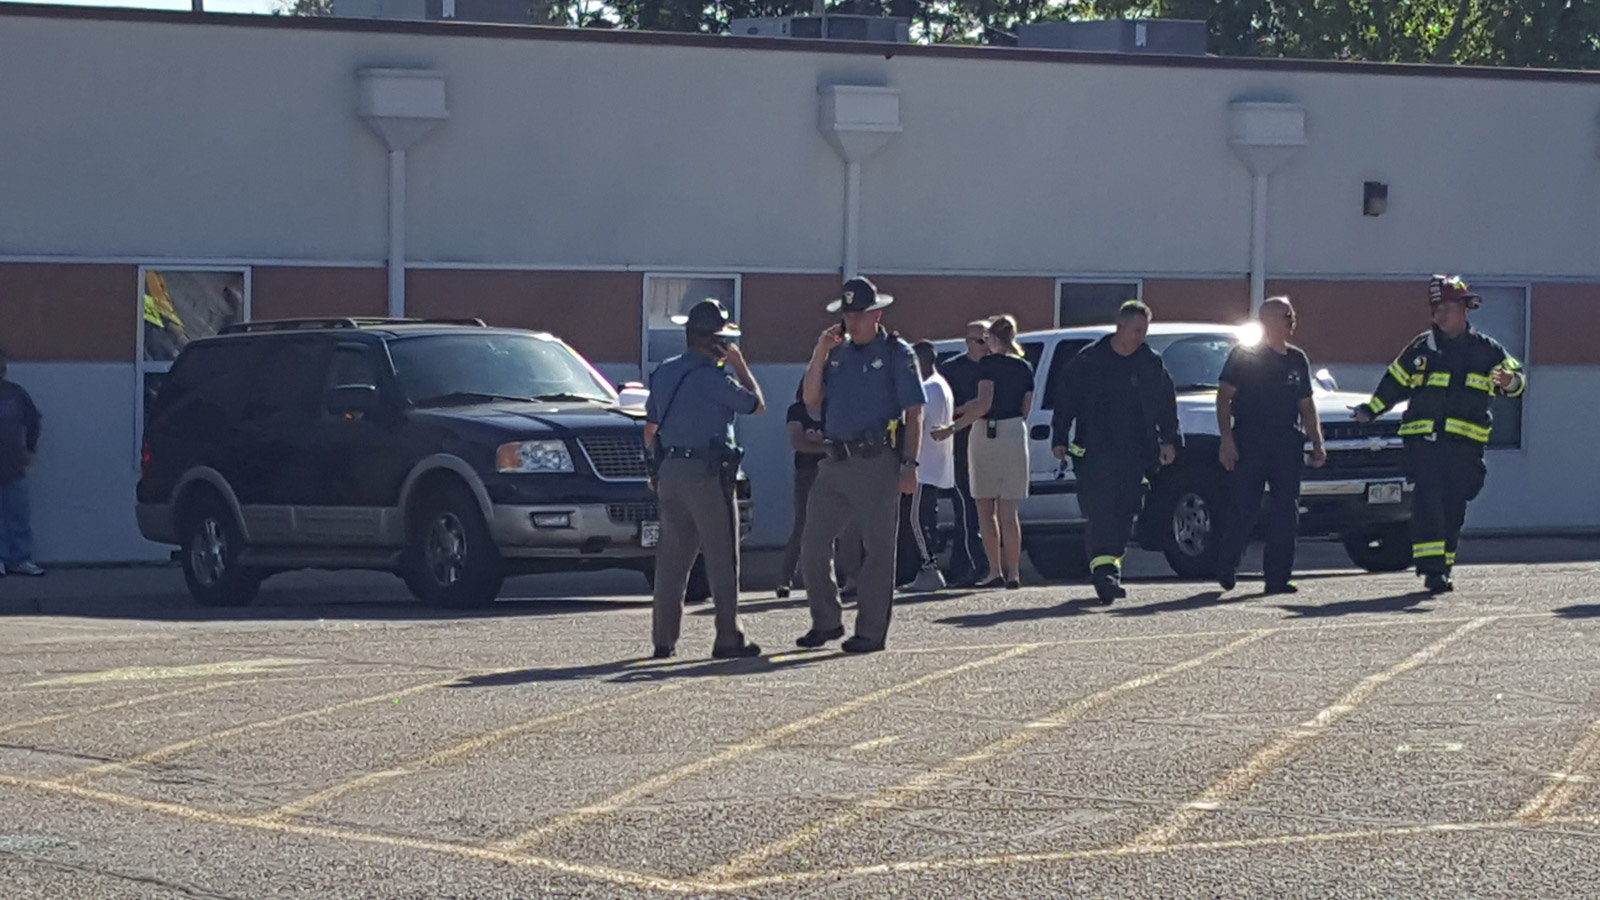 Three students were hurt at Valley View Elementary school (credit: CBS)